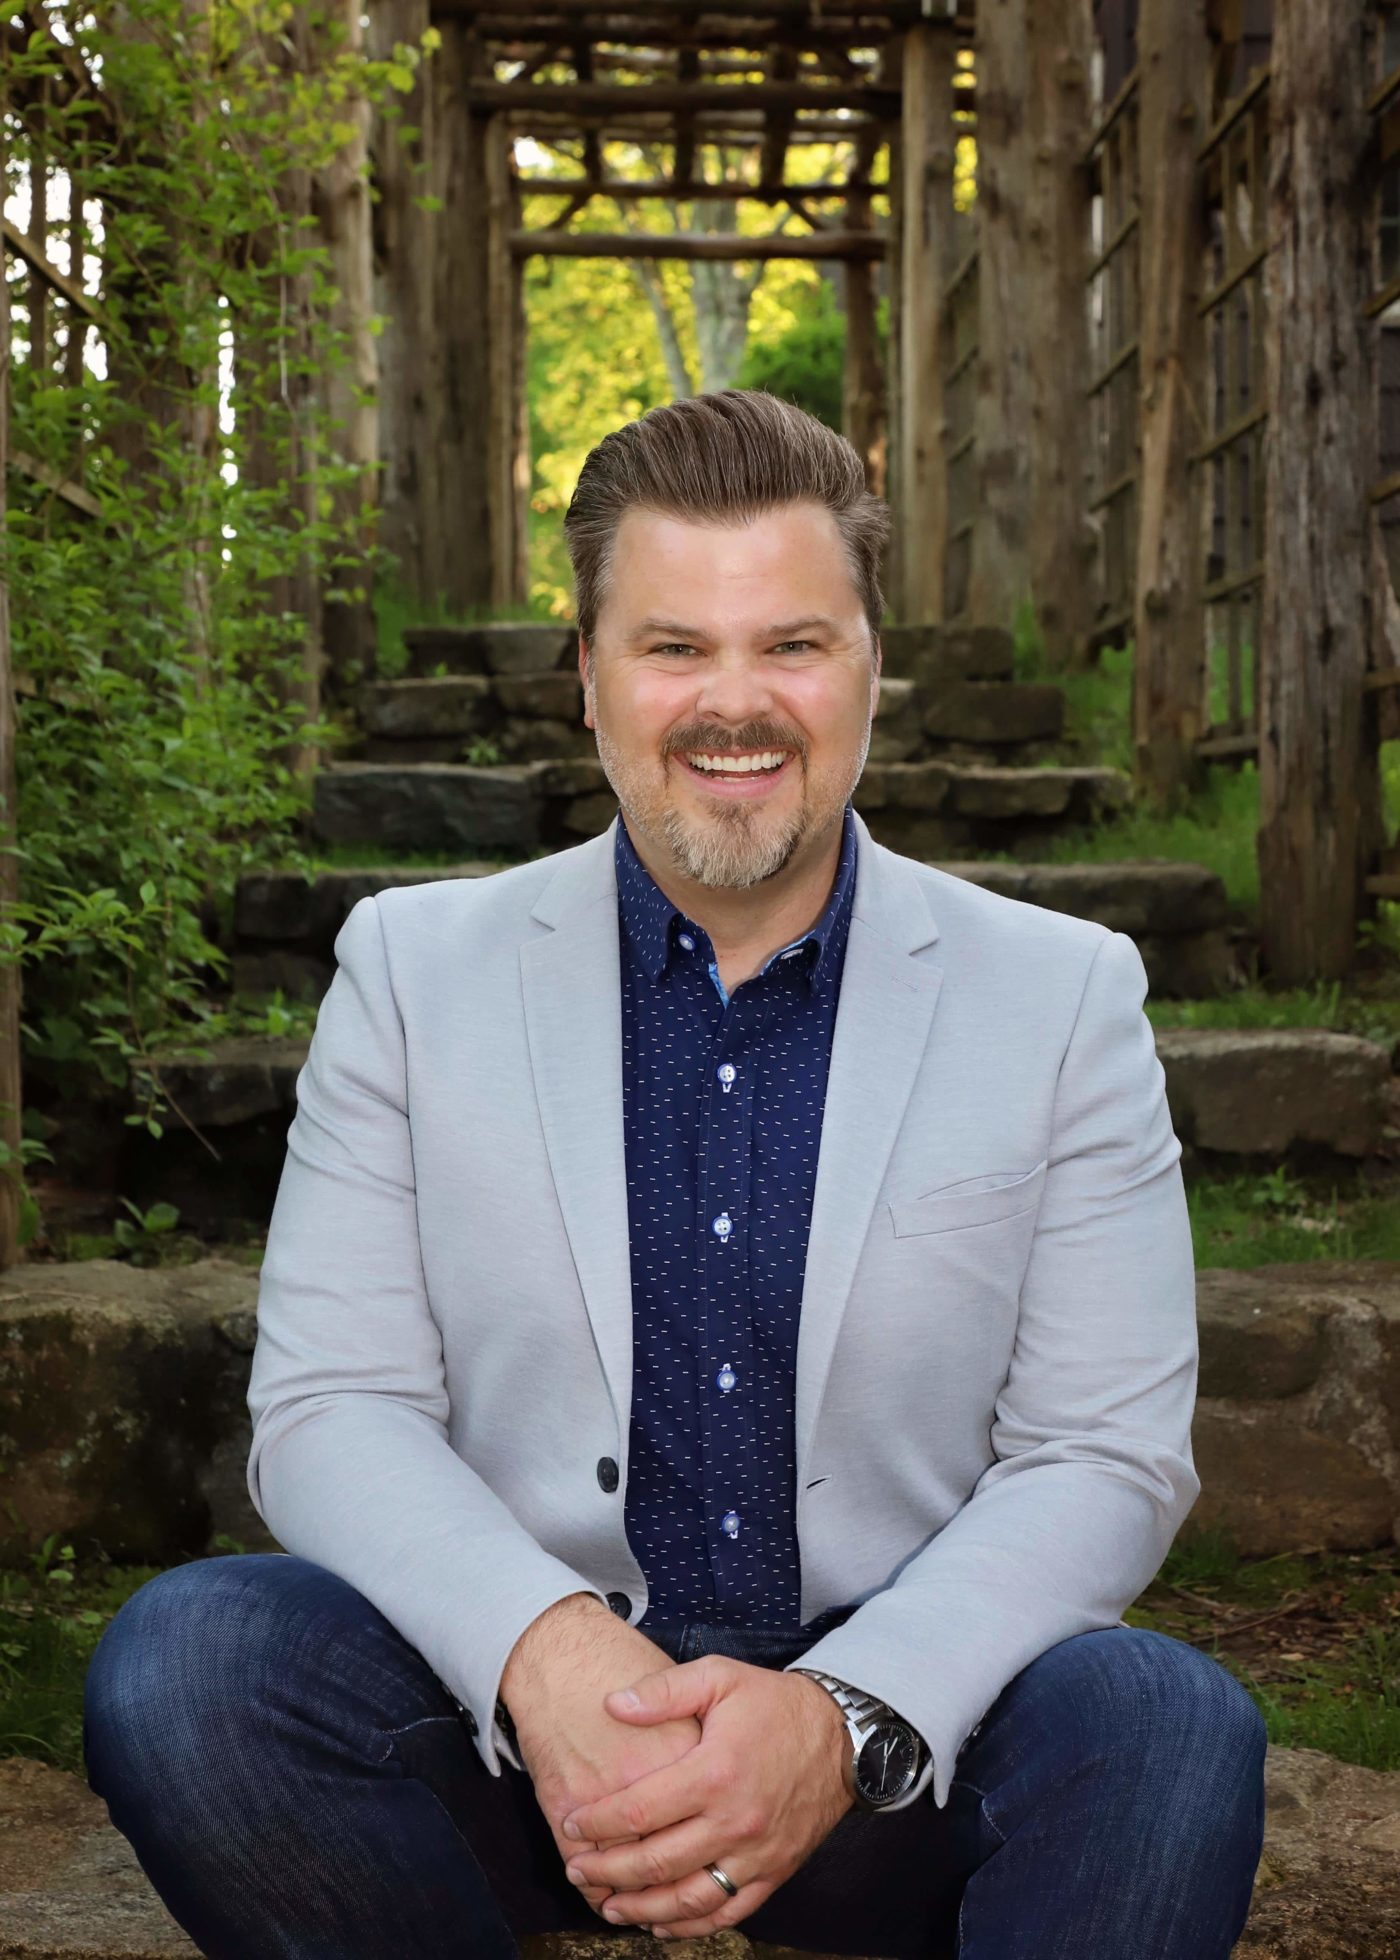 CNLP 289: Tim Lucas on Reaching Cynical Unchurched Young Adults, Launching What Would Become a MegaChurch in an Unchurched Region, and Surviving His Brush With Burnout